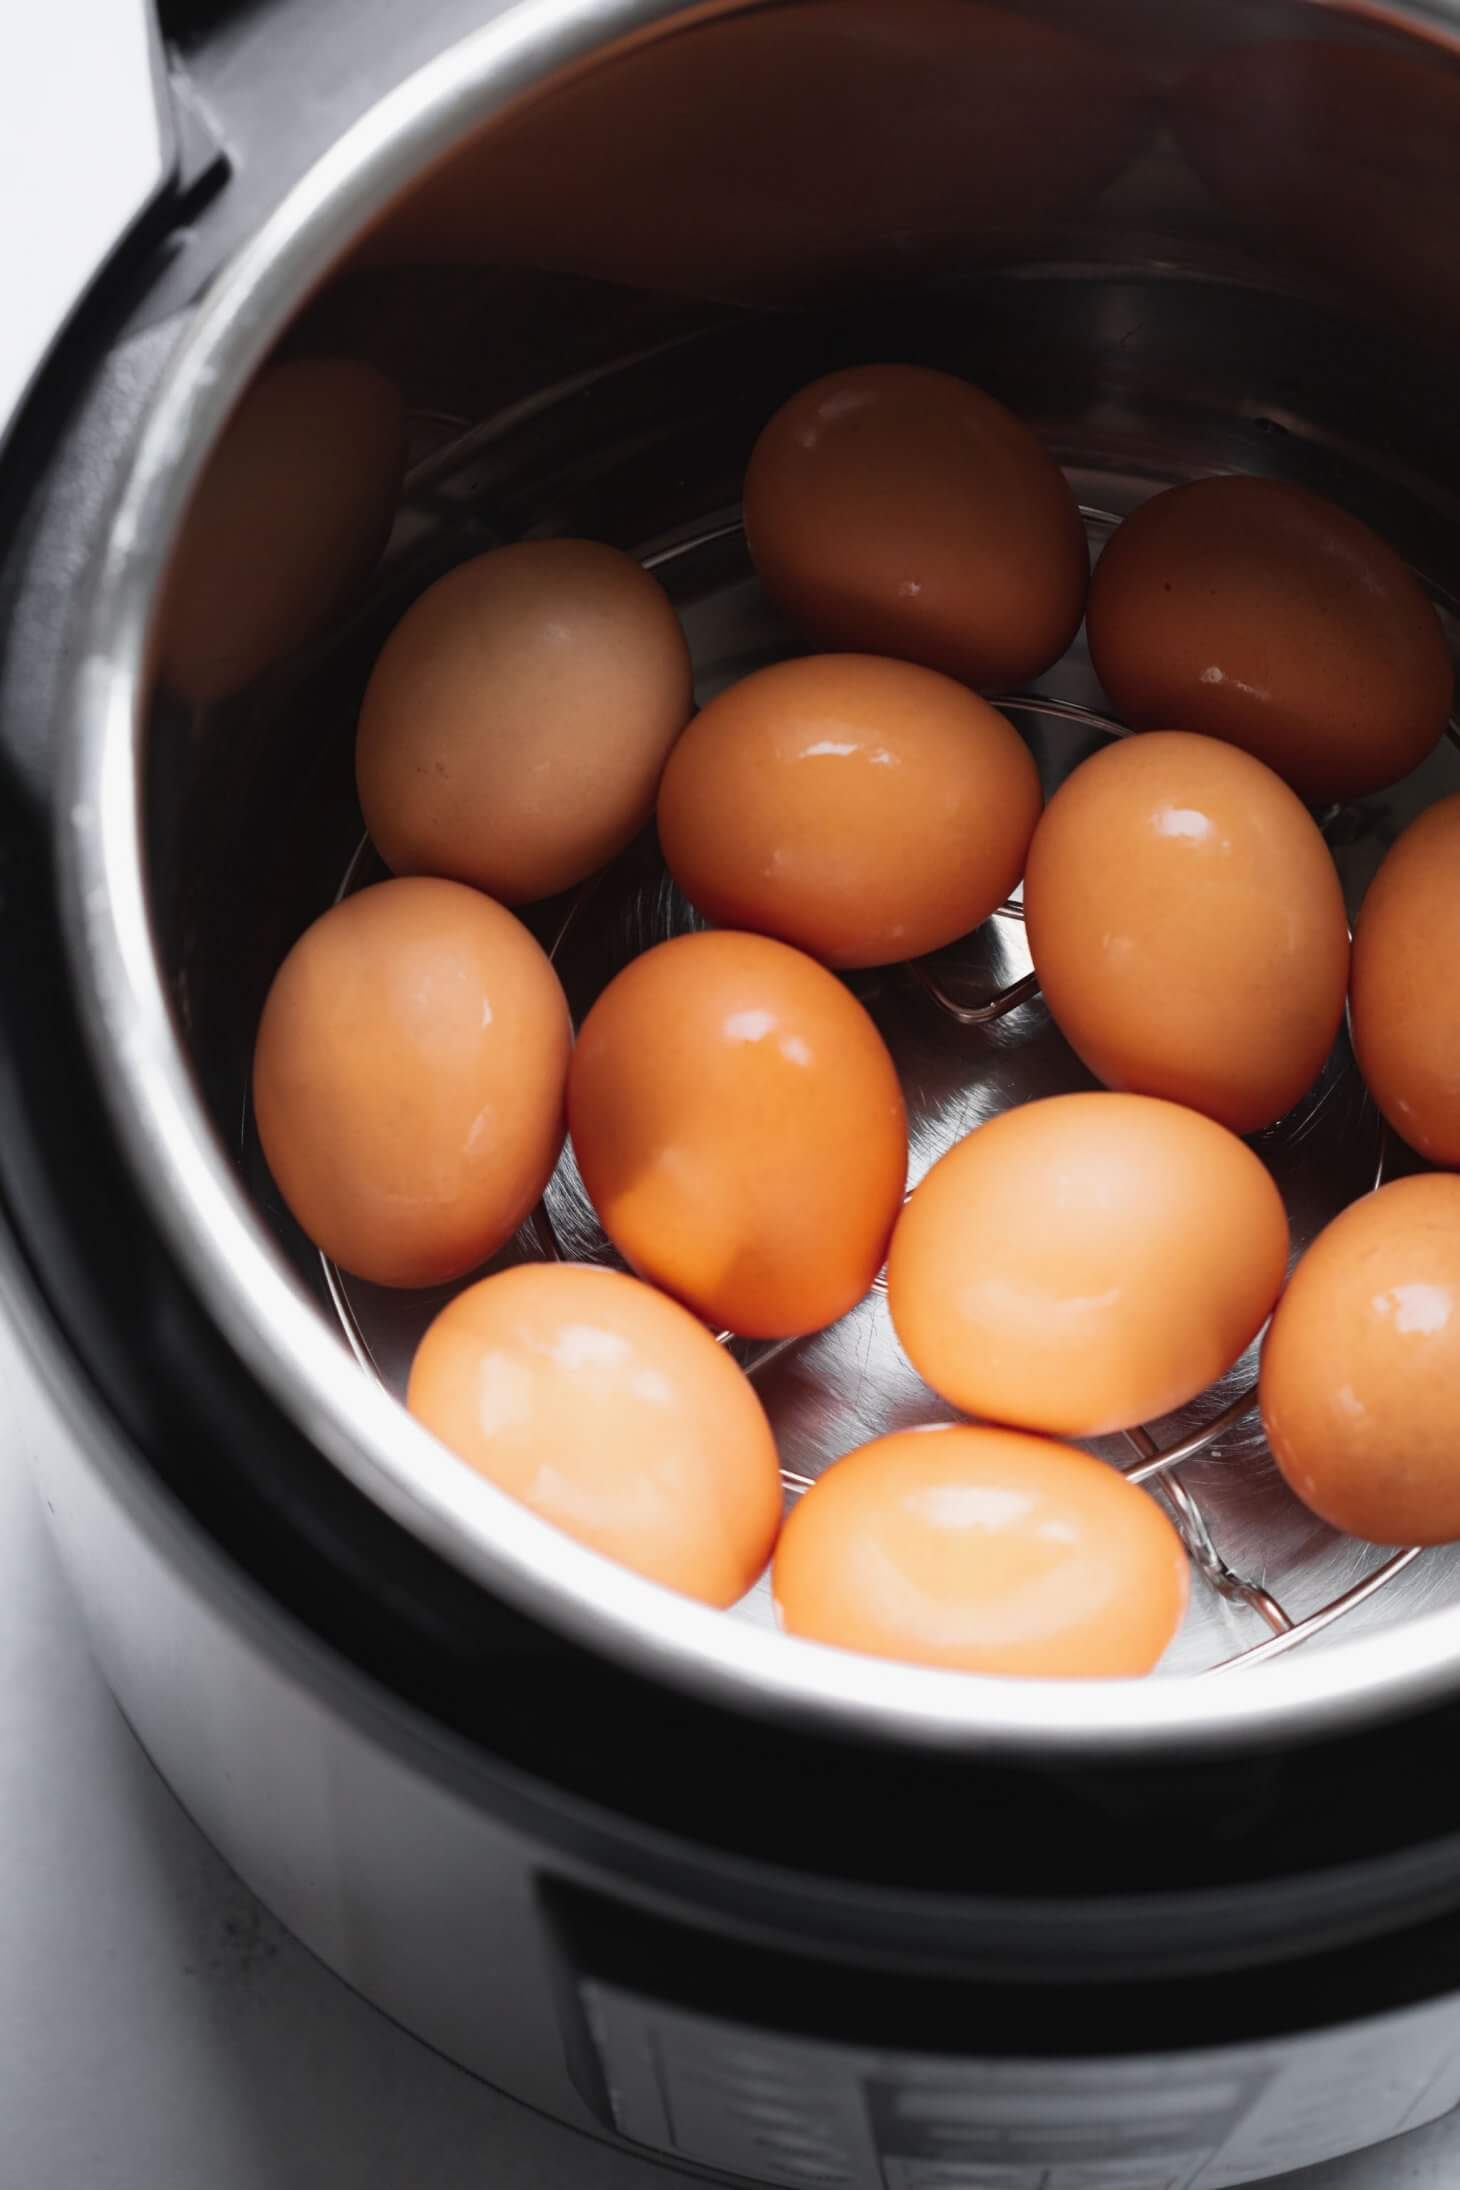 Eggs in the instant pot on a metal trivet.